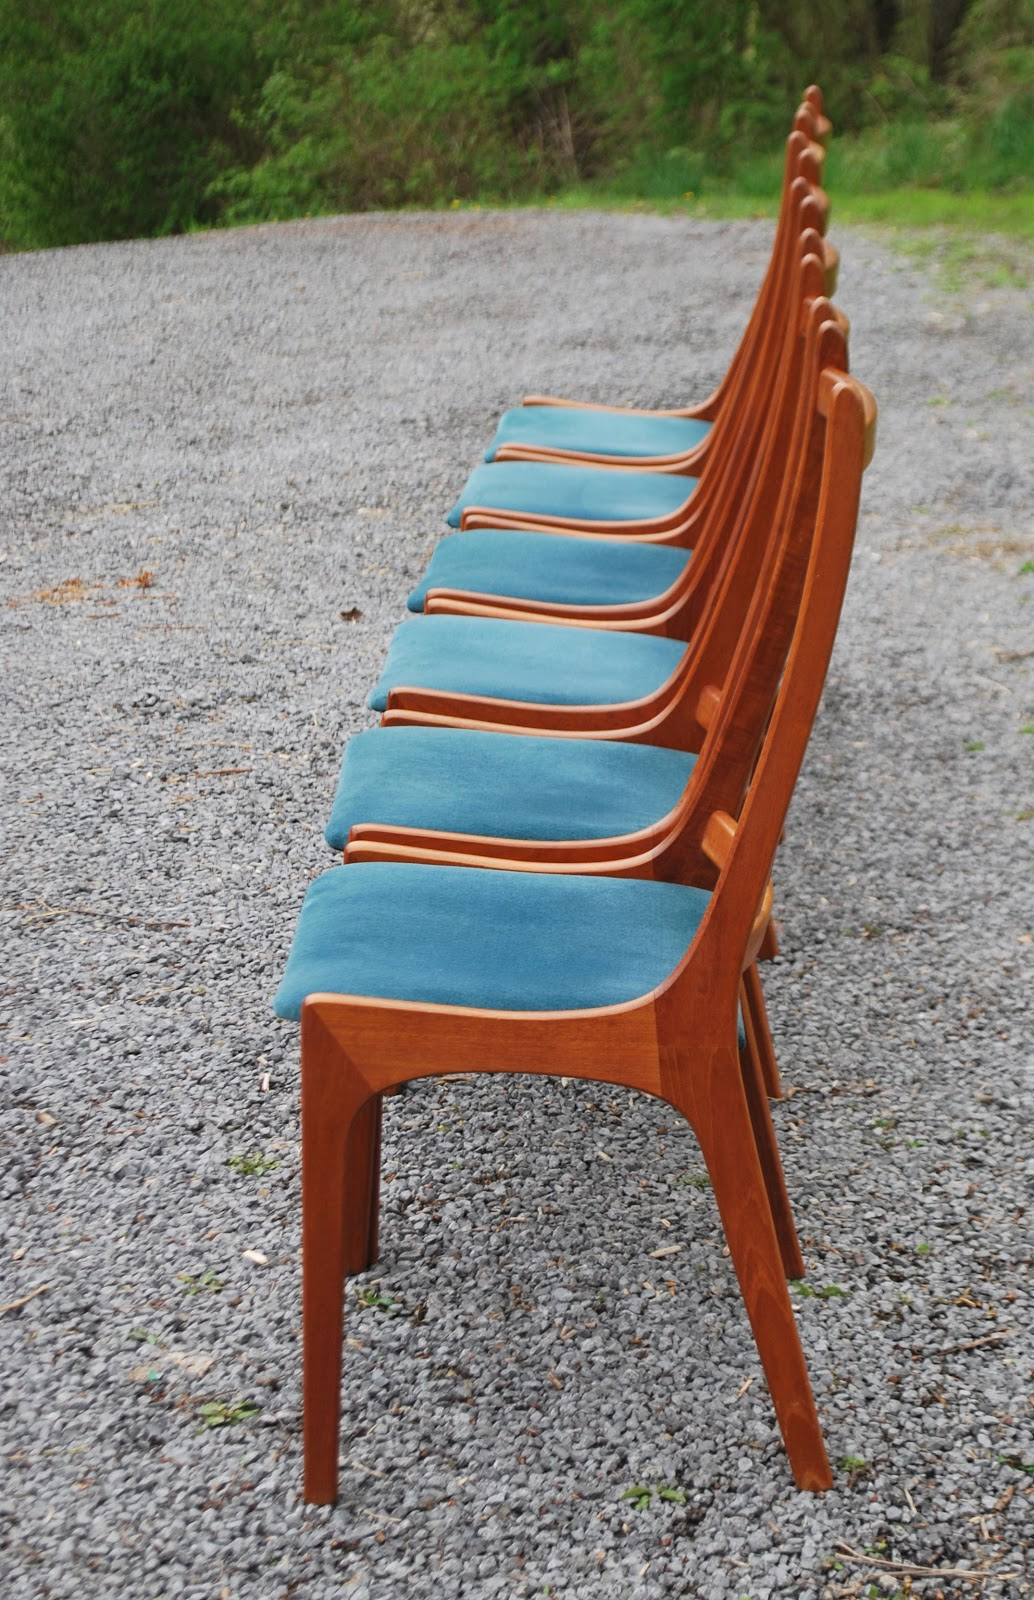 Tribute 20th Decor: Vintage Teak Dining Chairs and Table